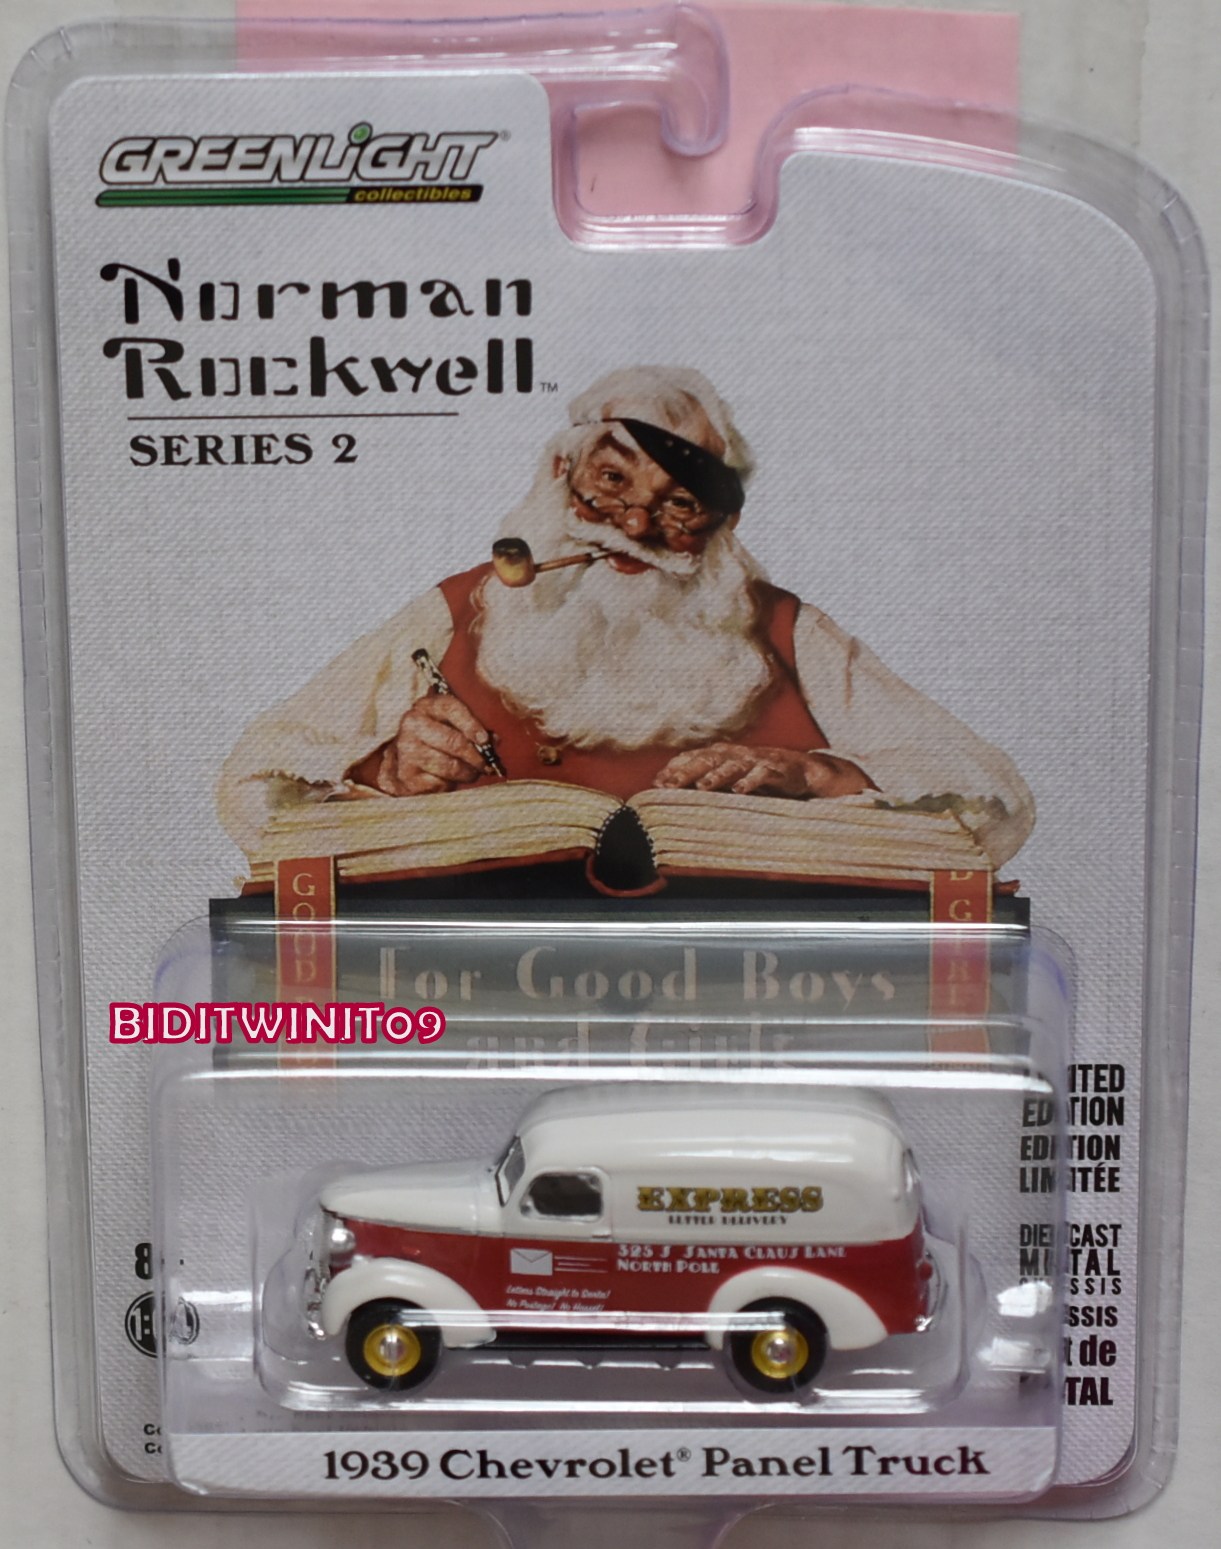 GREENLIGHT NORMAN ROCKWELL SERIES 2 1939 CHEVROLET PANEL TRUCK